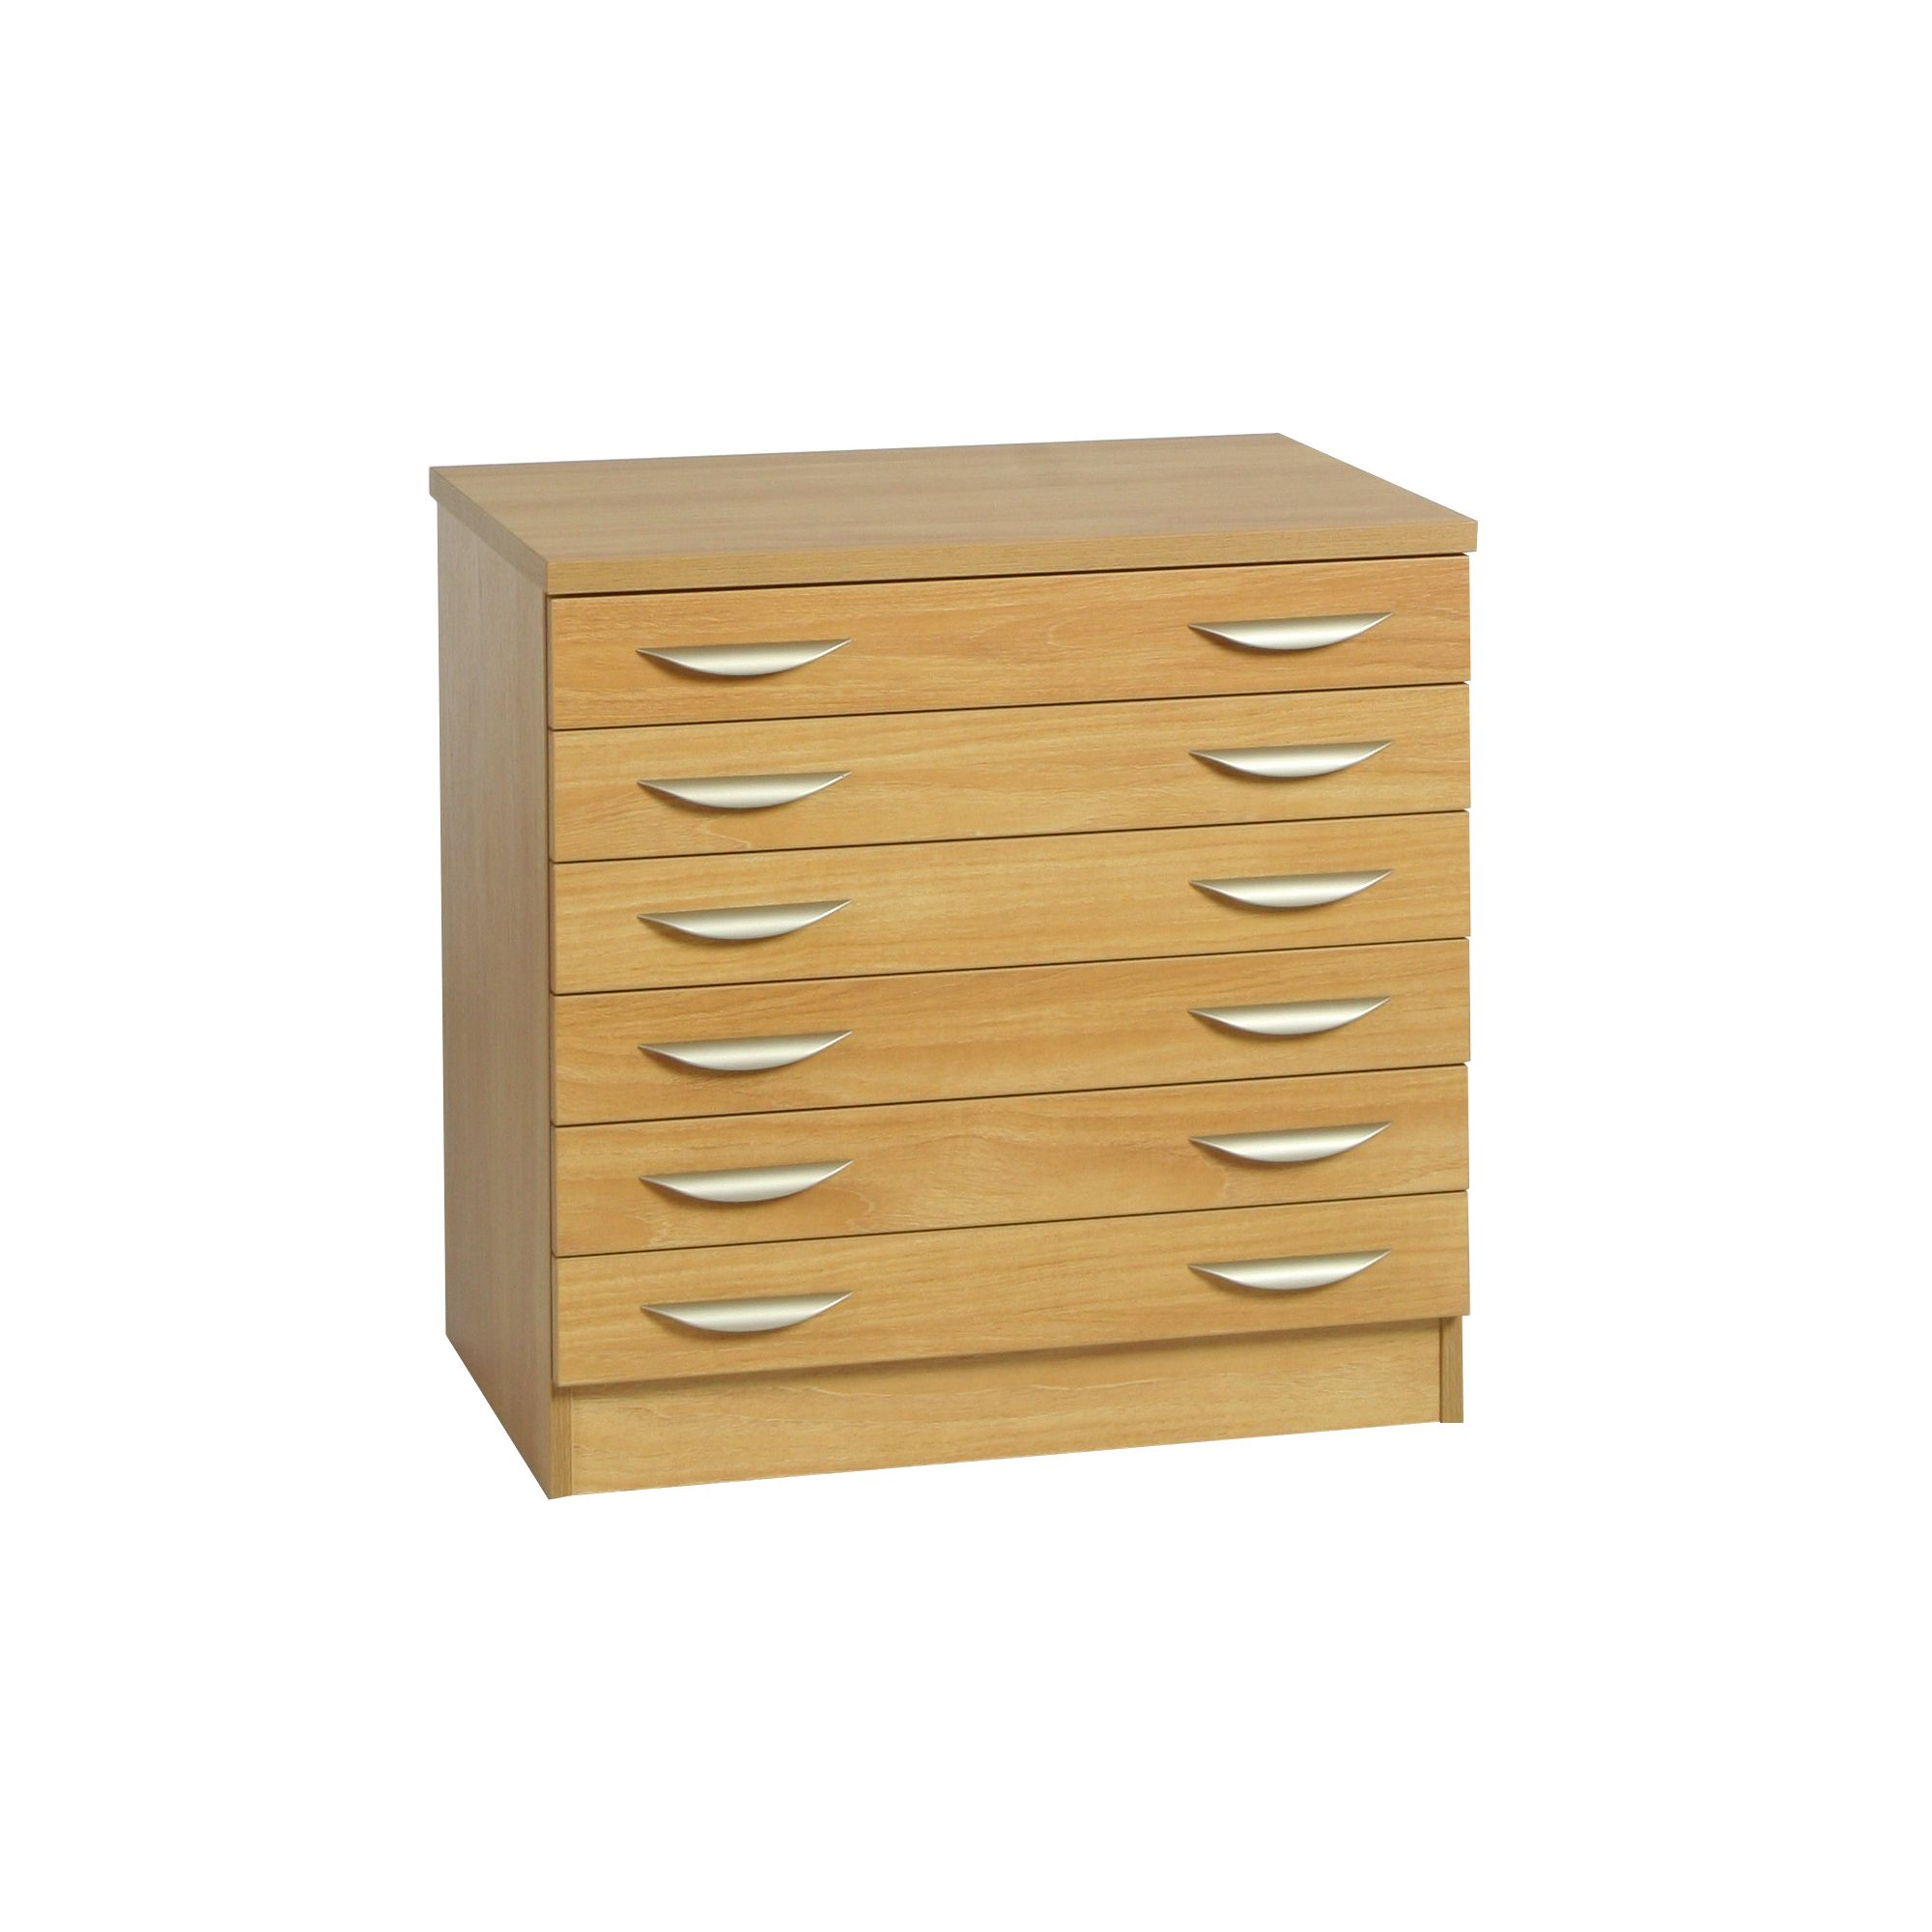 R White Cabinets Six Drawer Wooden Unit - Walnut at Tesco Direct